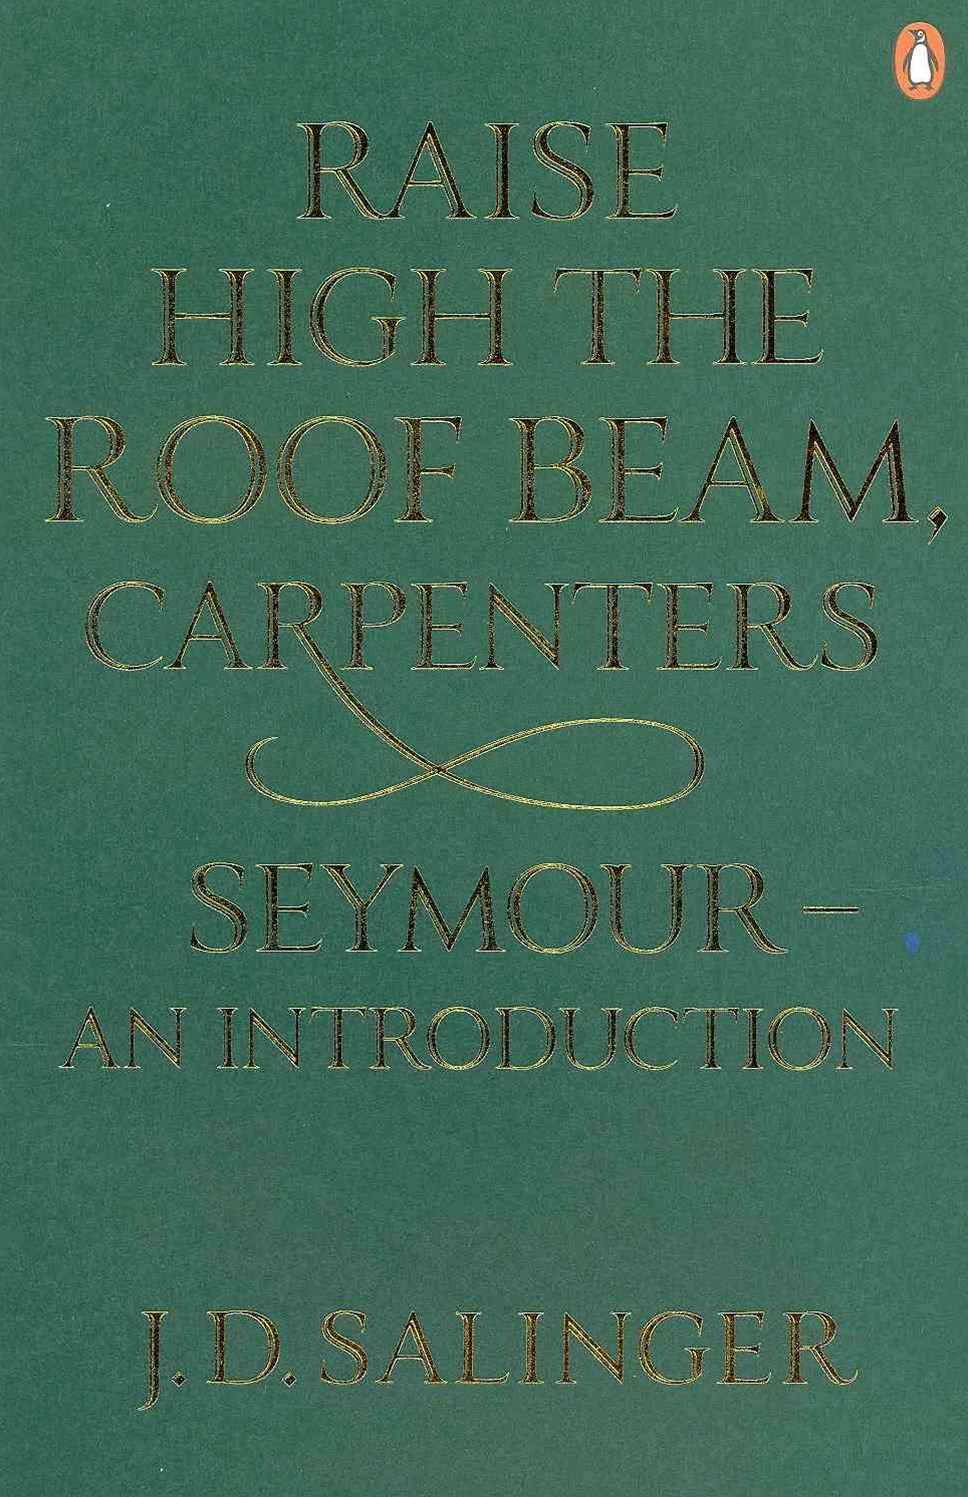 Raise High The Roof Beam, Carpenters, Seymour - An Introduction